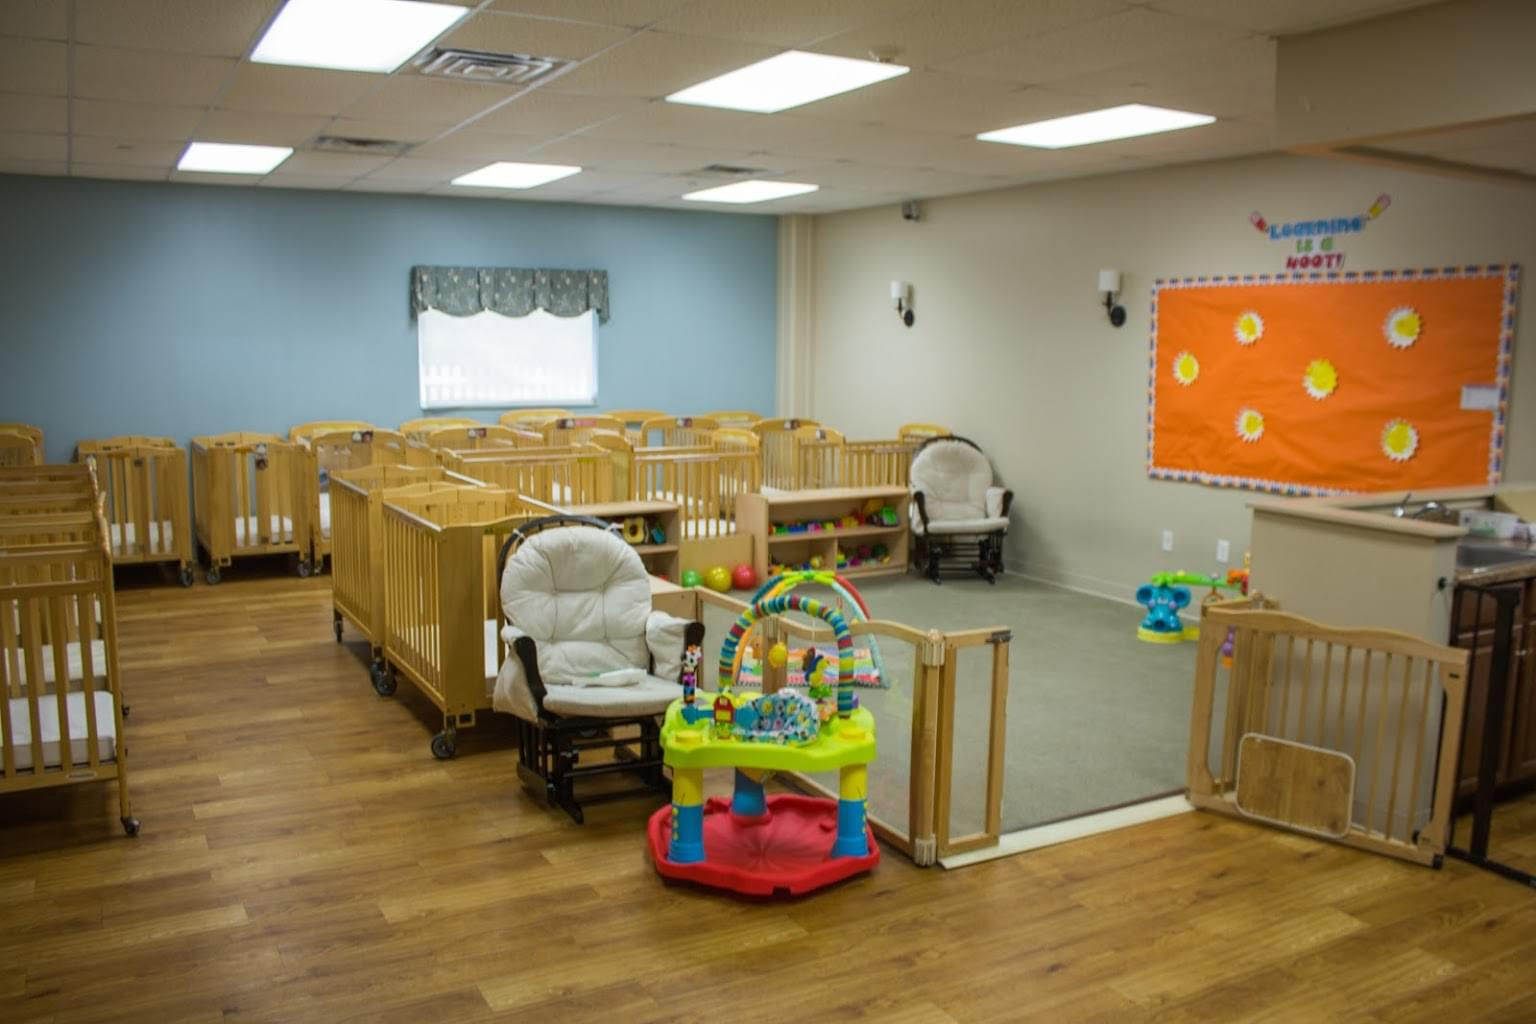 Lightbridge Academy pre-school in Fair Lawn, NJ